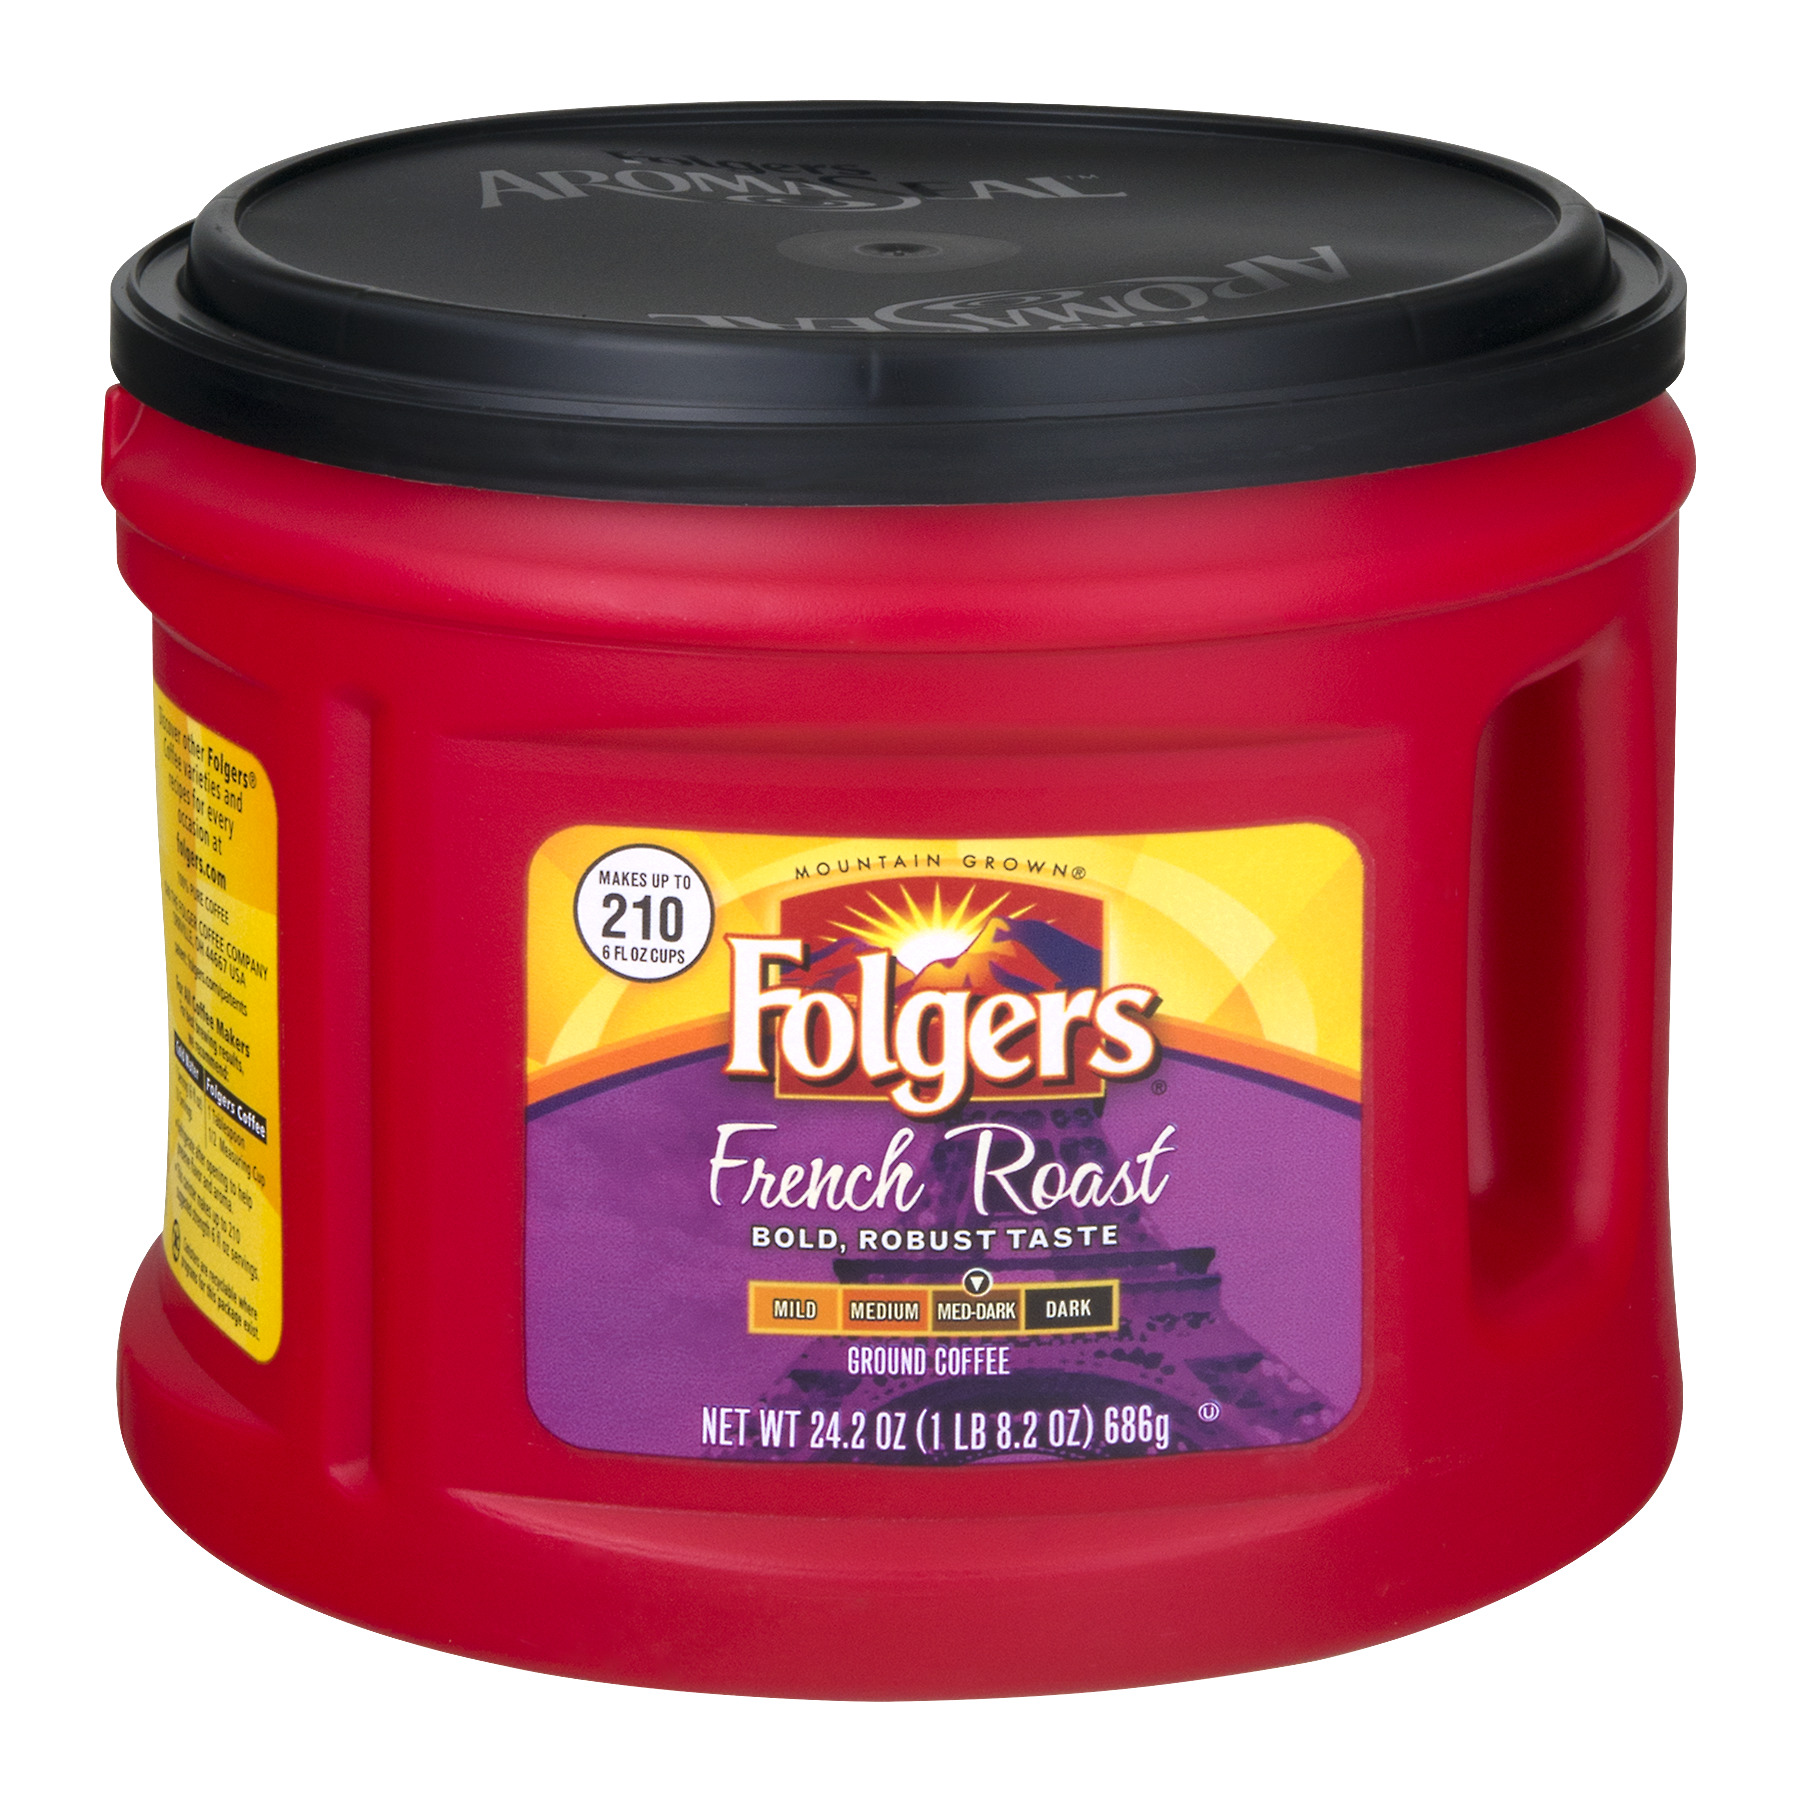 Folgers Ground Coffee French Roast, 24.2 OZ